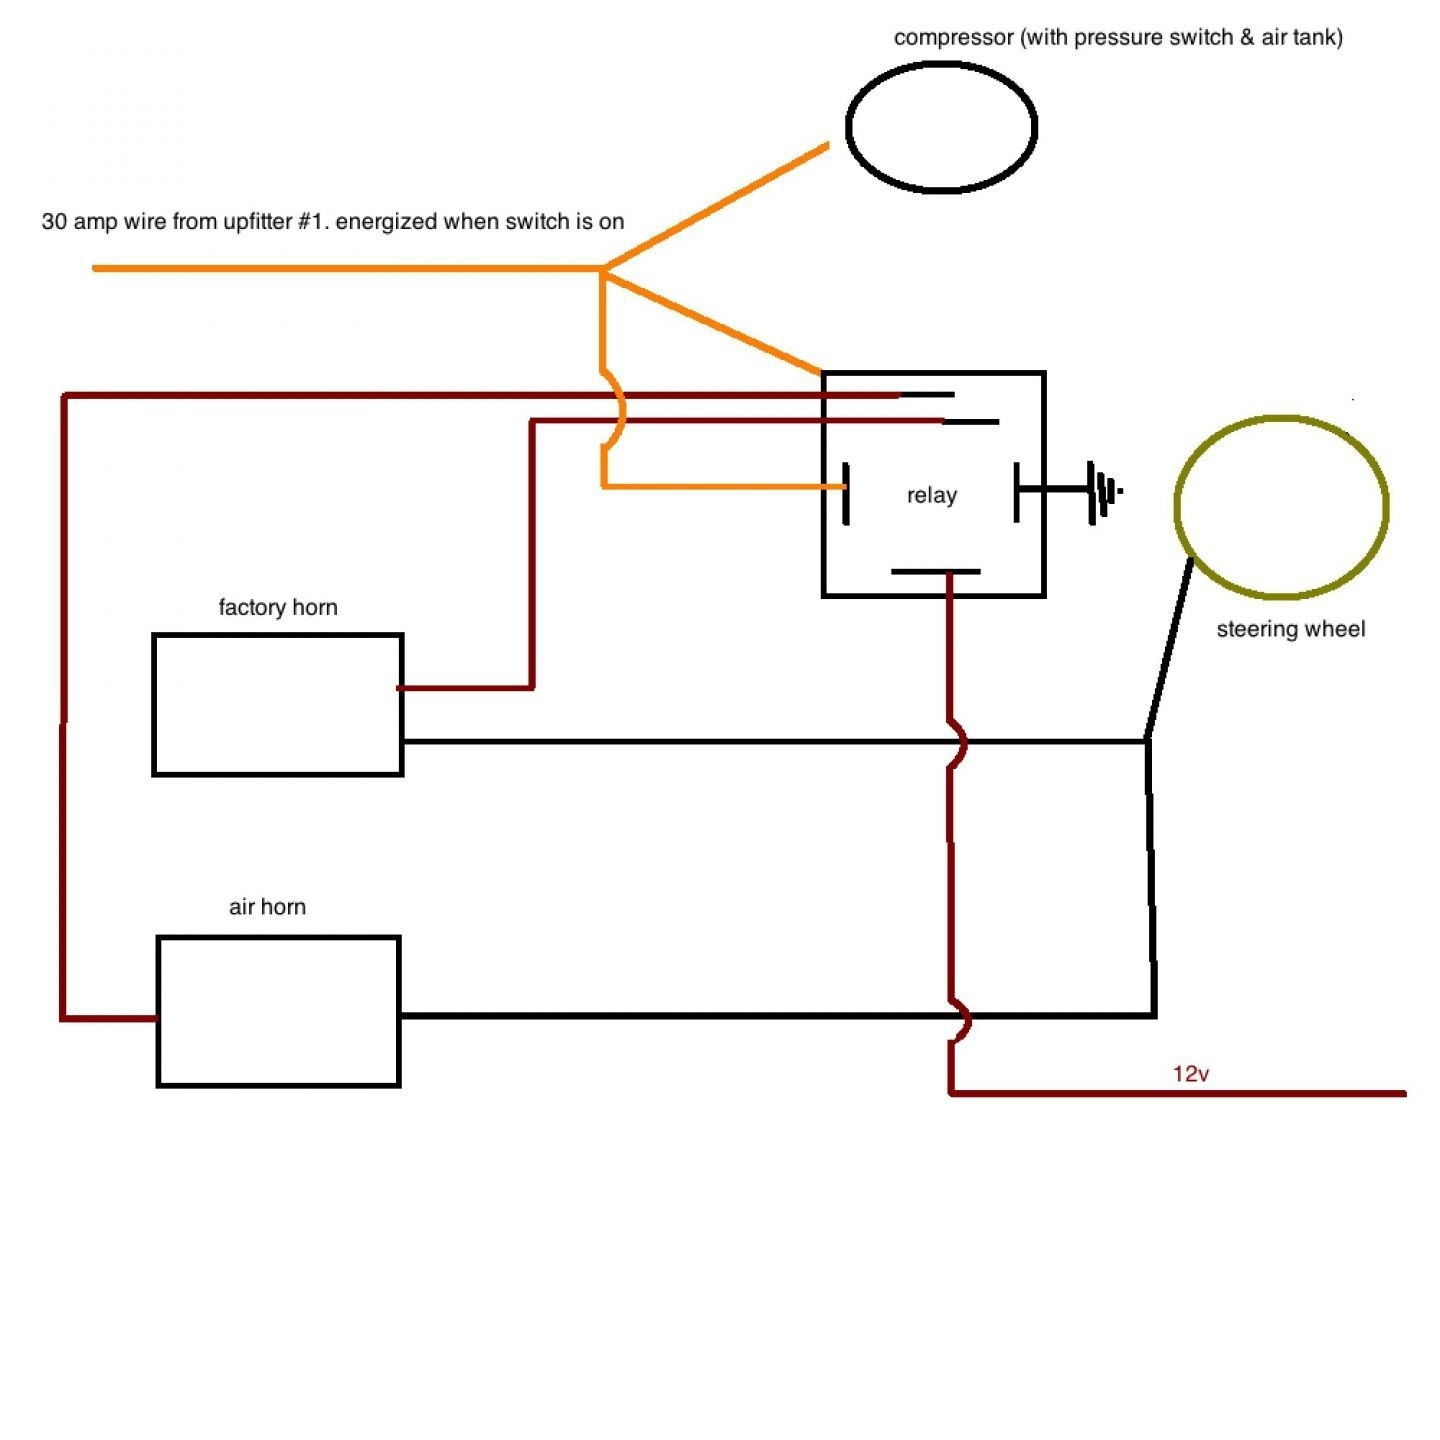 hight resolution of truck air horn diagram wiring diagram datasource air pressor relay wiring diagram